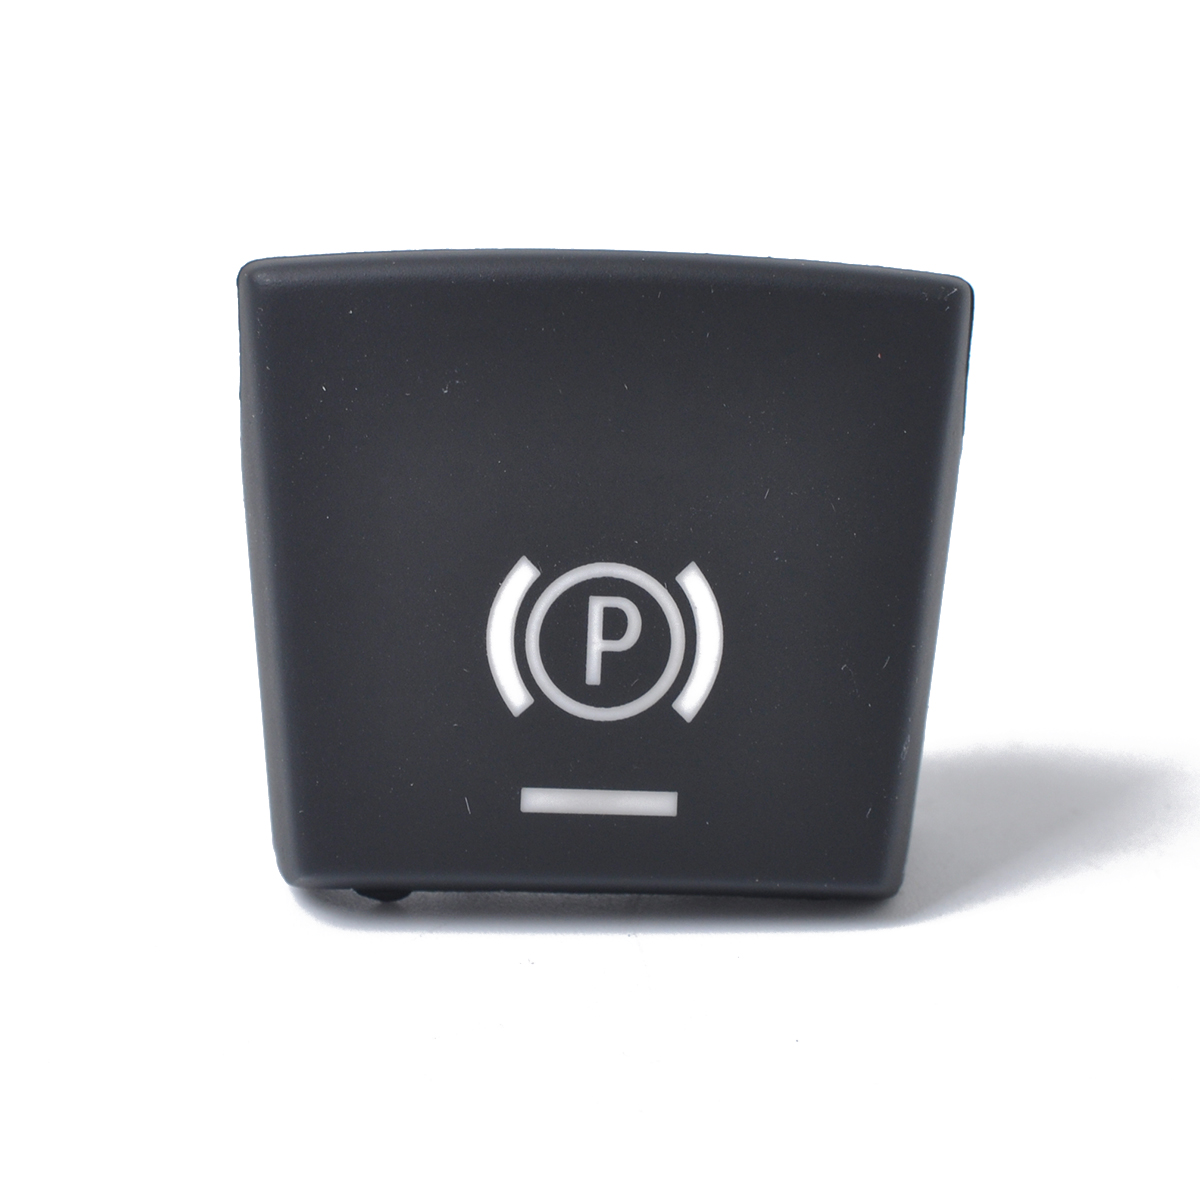 Parking Brake P Button Switch Cover For BMW 5 6 X3 X4  F10 F11 F06 2009-2013 black